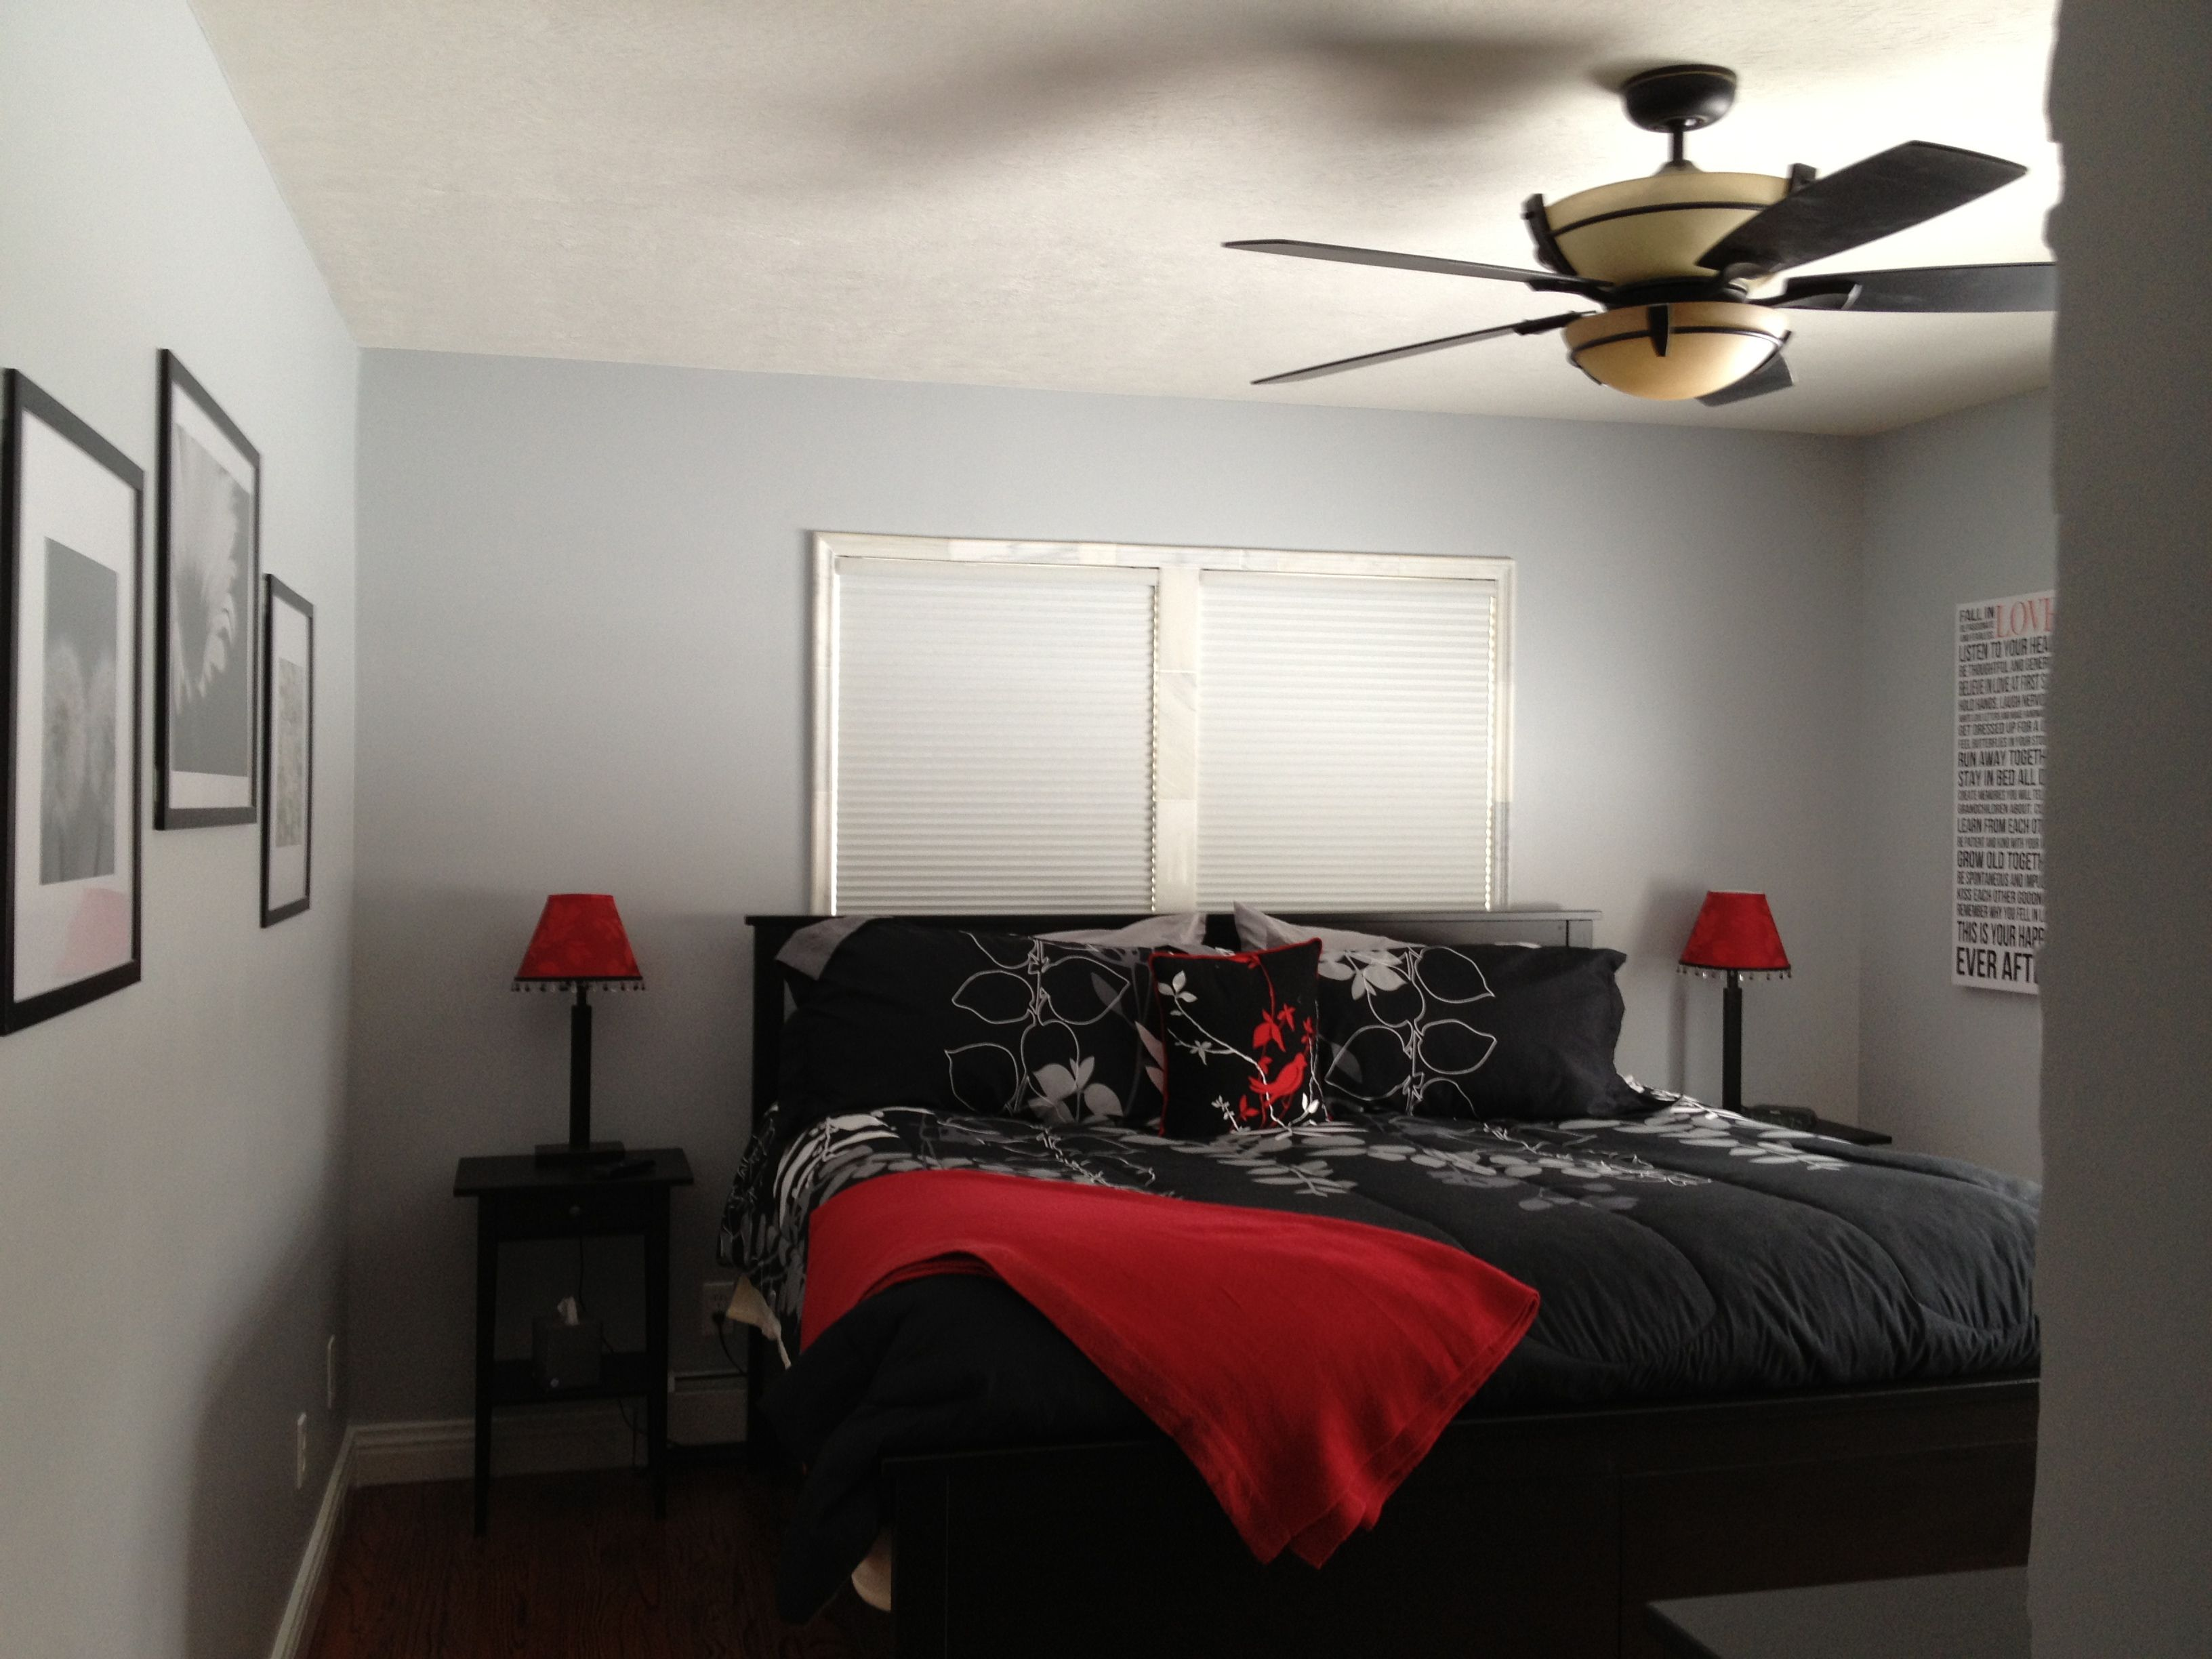 Charmant Grey, White, Black And Red Master Bedroom. Love It!